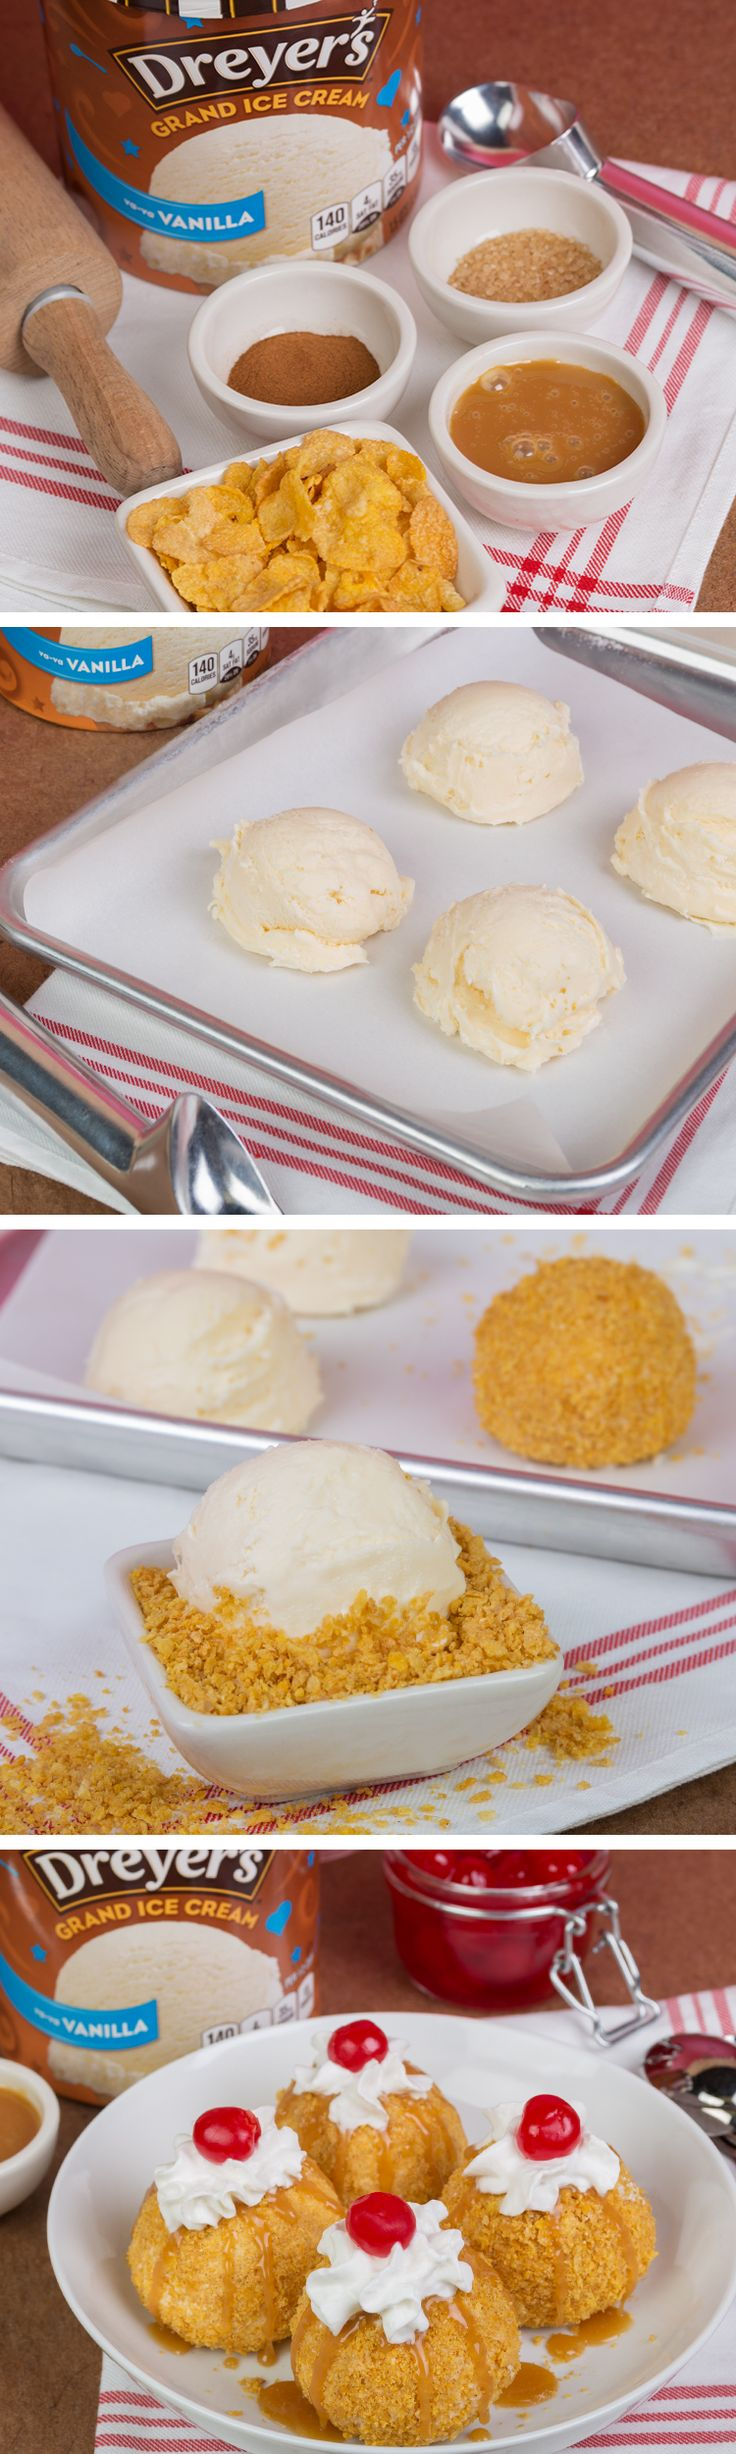 "Dreyer's ""Fried"" Ice Cream Recipe: Our easy no-bake recipe will add a fun crunch for after dinner. Start by crushing a handful of flakey cereal to make the ""fried"" layer. Then, add a dash of cinnamon and sugar. Next, scoop Dreyer's Grand Vanilla Ice Cream on a lined baking sheet and freeze until hard. Roll the scoops into balls and into the cereal mixture. Return them to the baking sheet until hard. Top off with caramel sauce, whipped cream, and cherries as desired. Enjoy!"